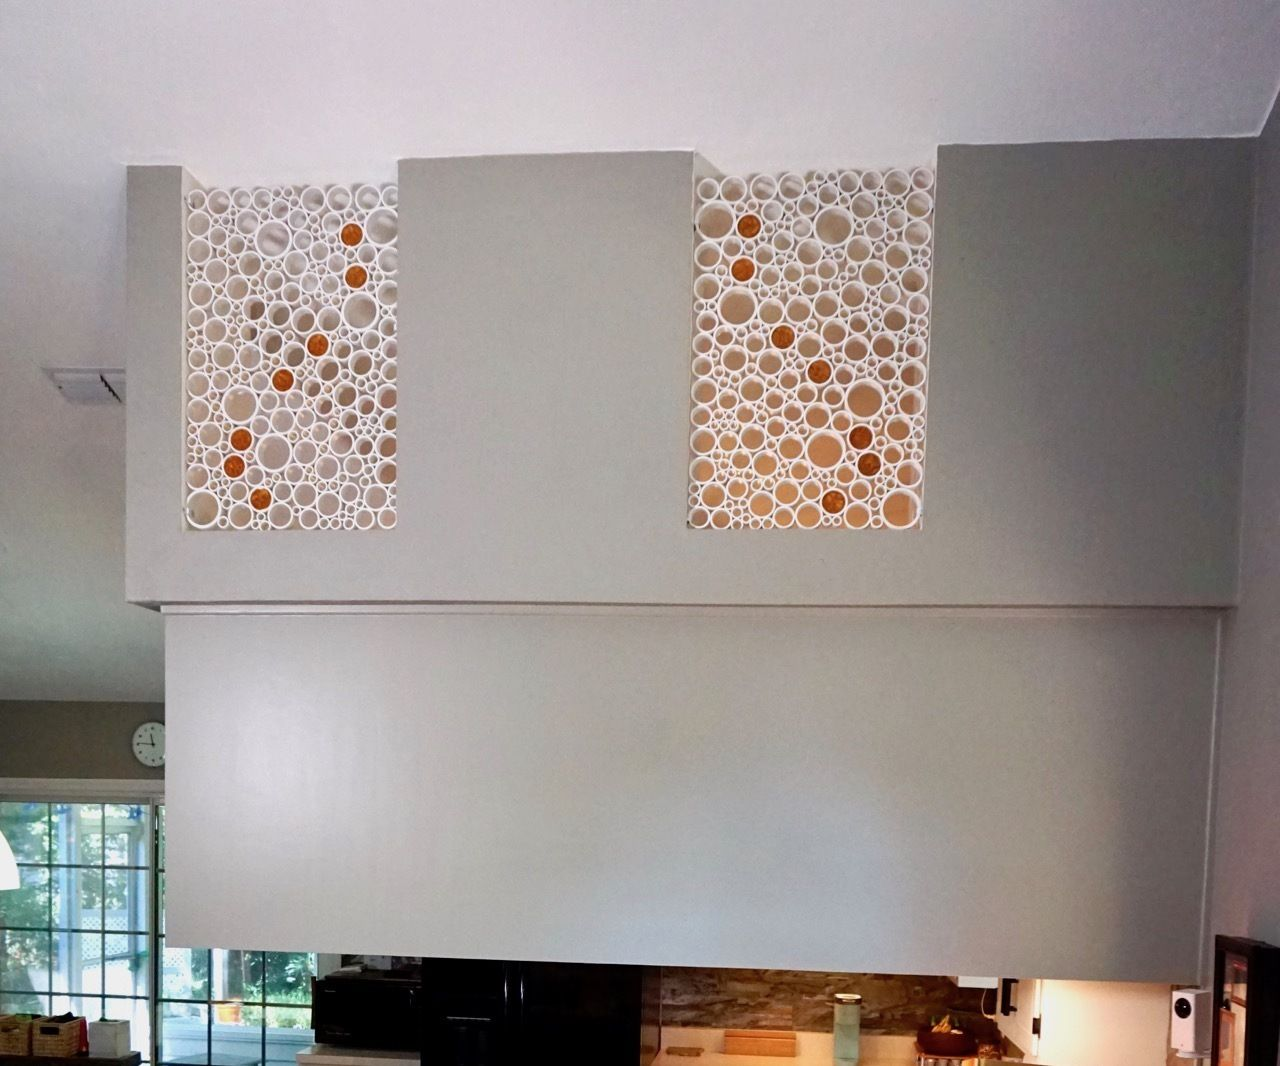 How to Make PVC Pipe Artwork for Inside the Home